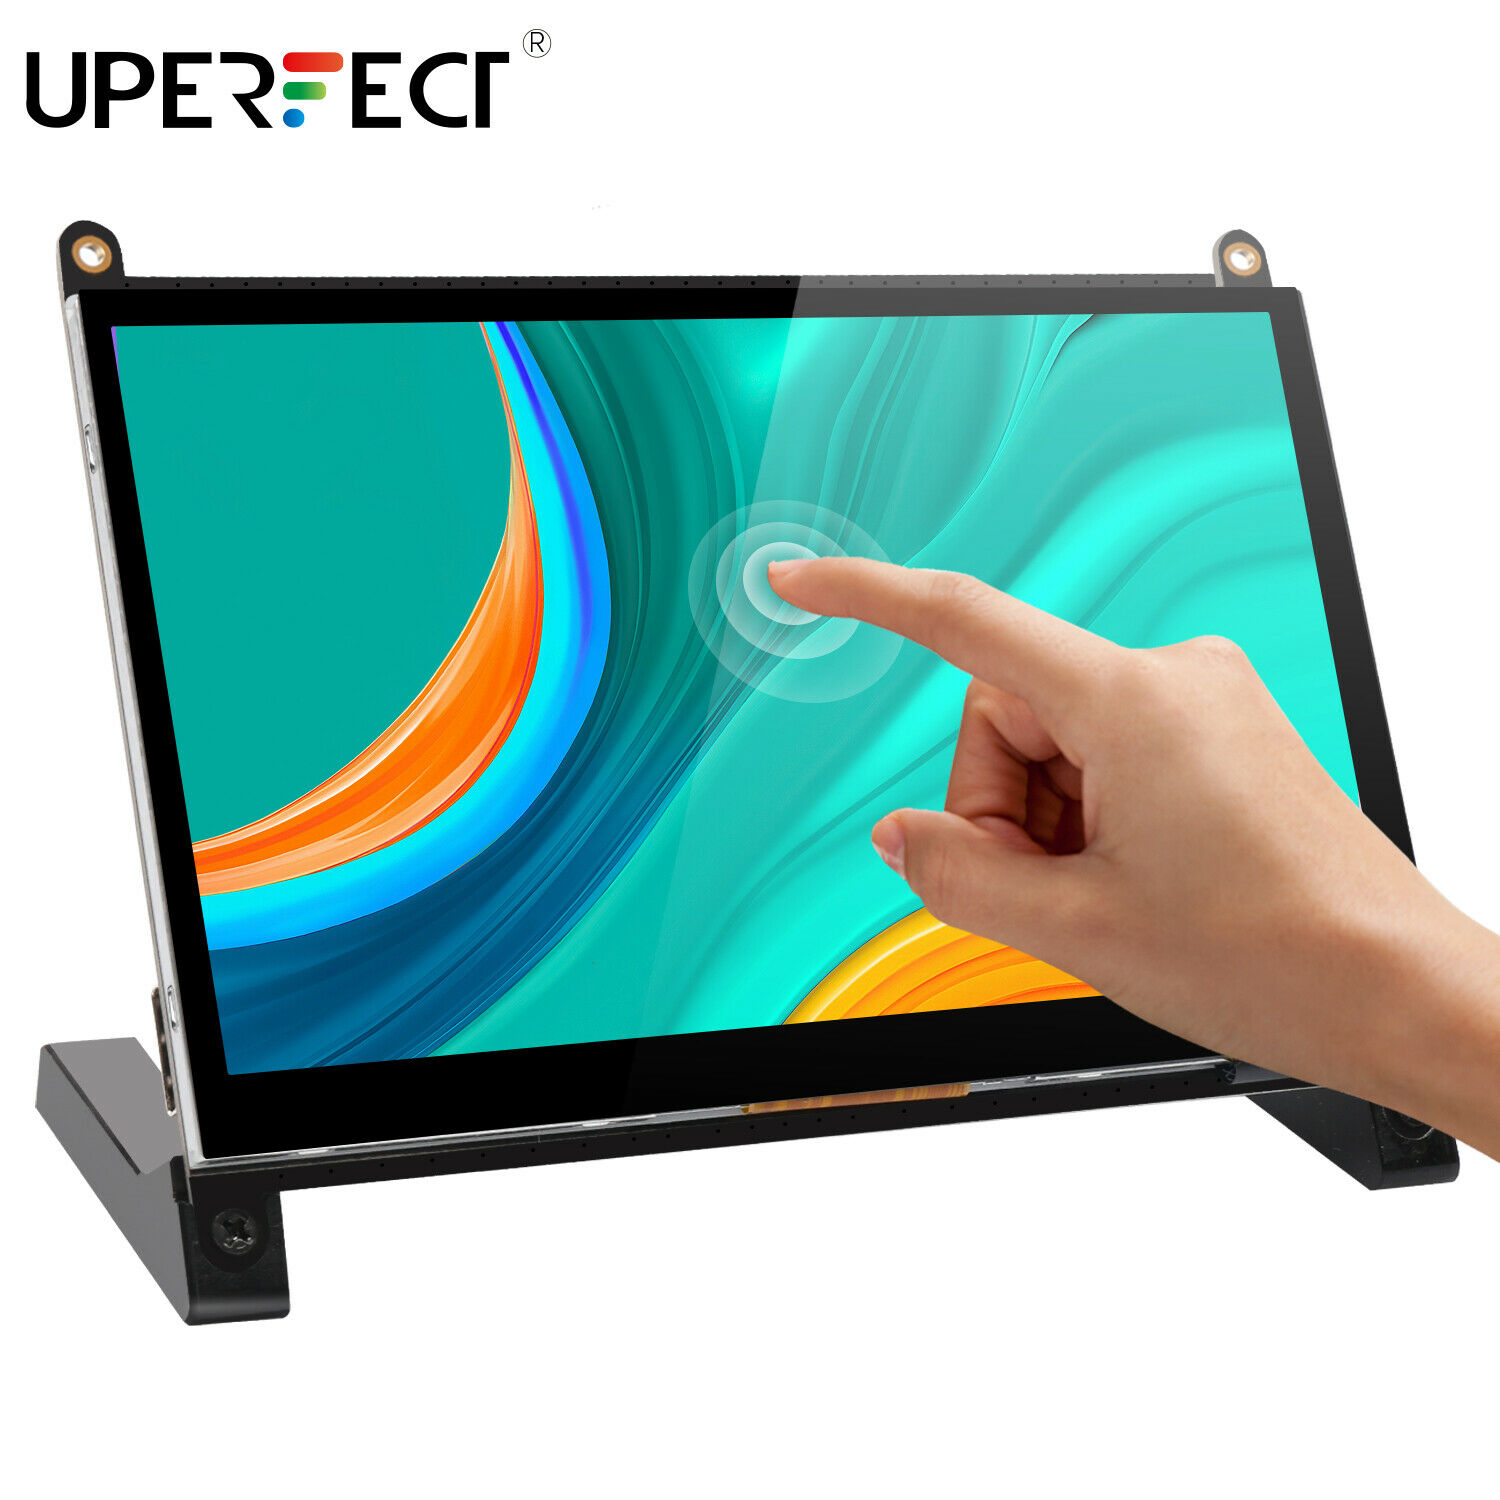 Uperfect 7 Inch Mini Monitor For Sale Online Ebay